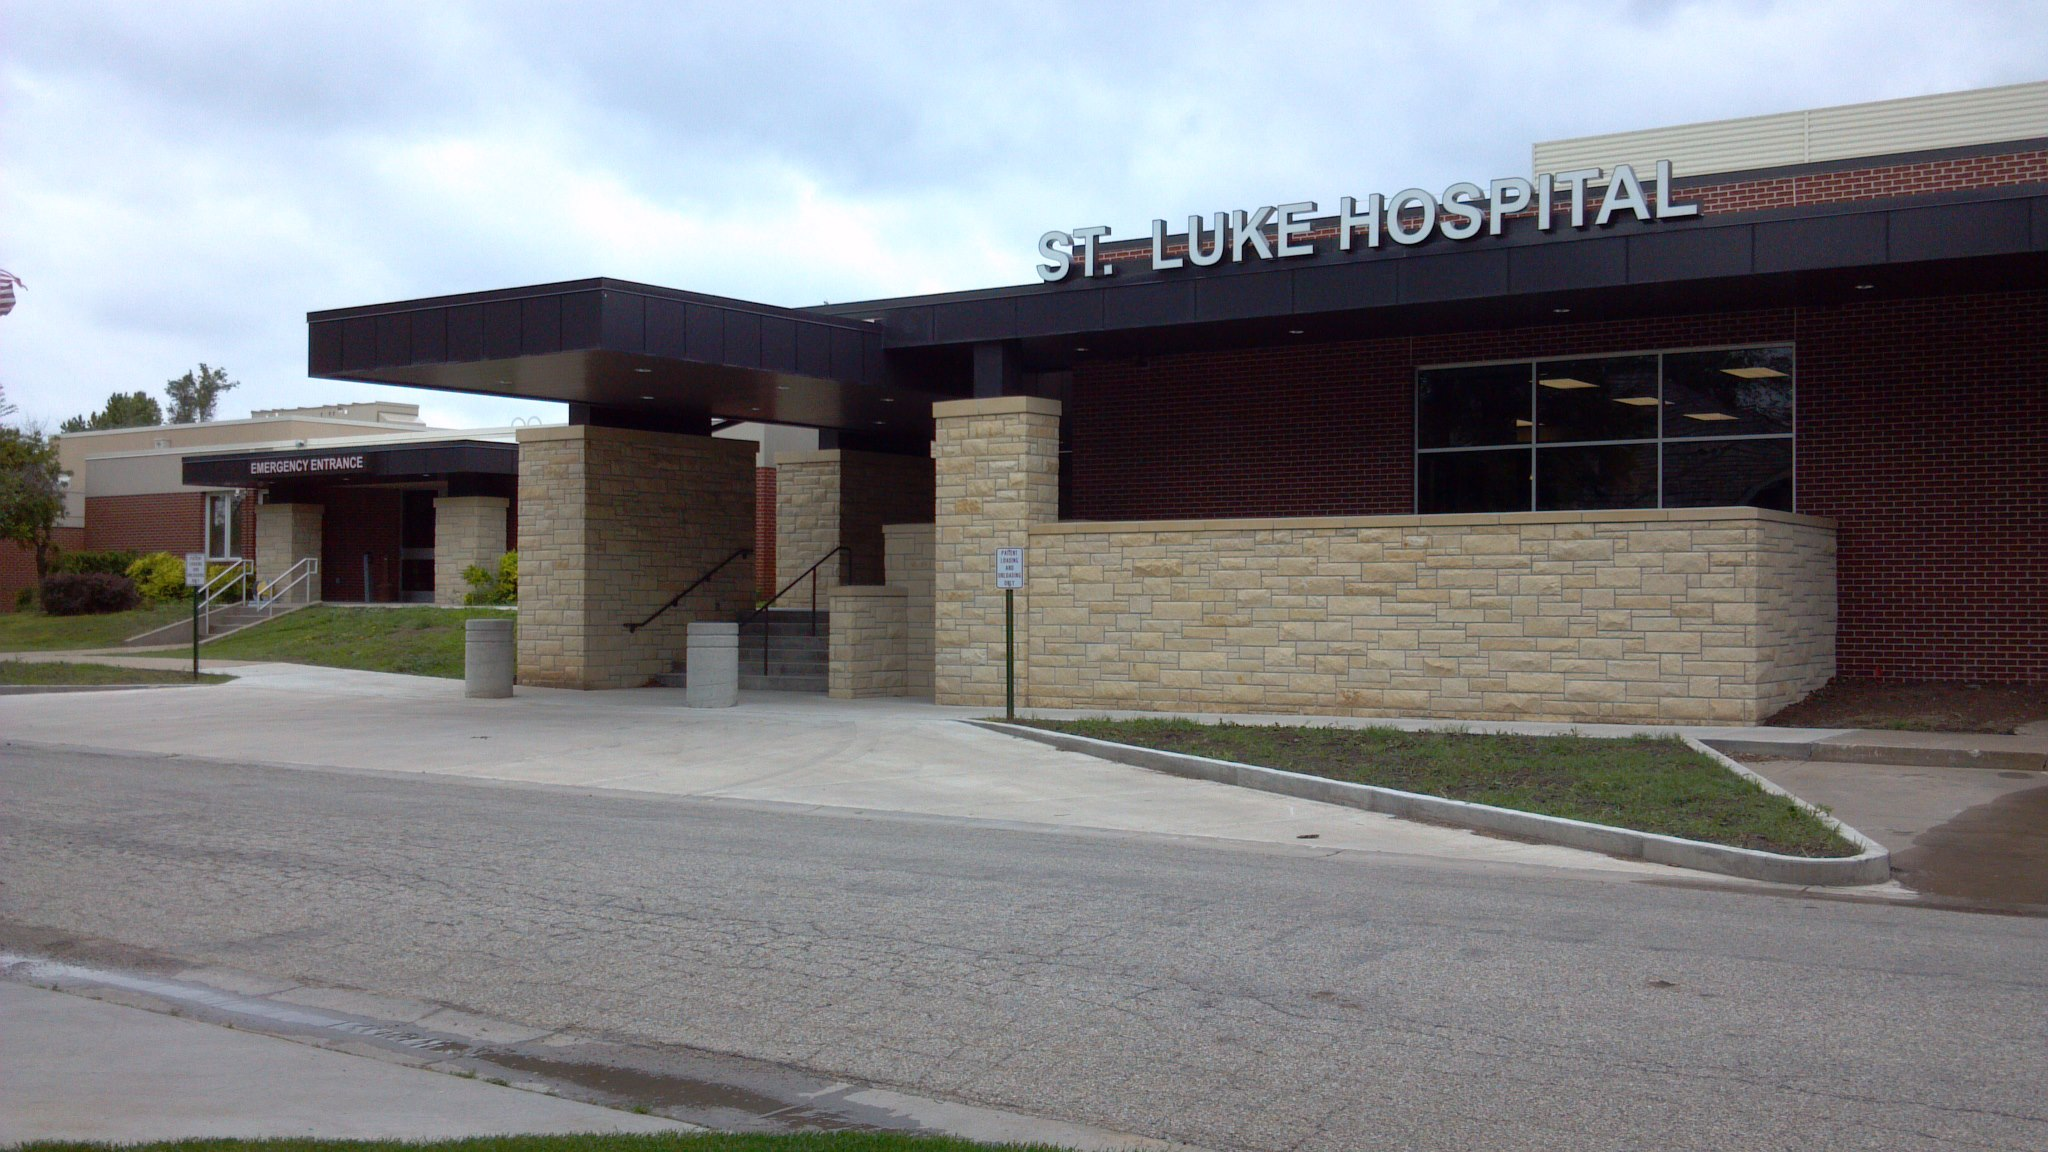 St. Luke Hospital and Living Center